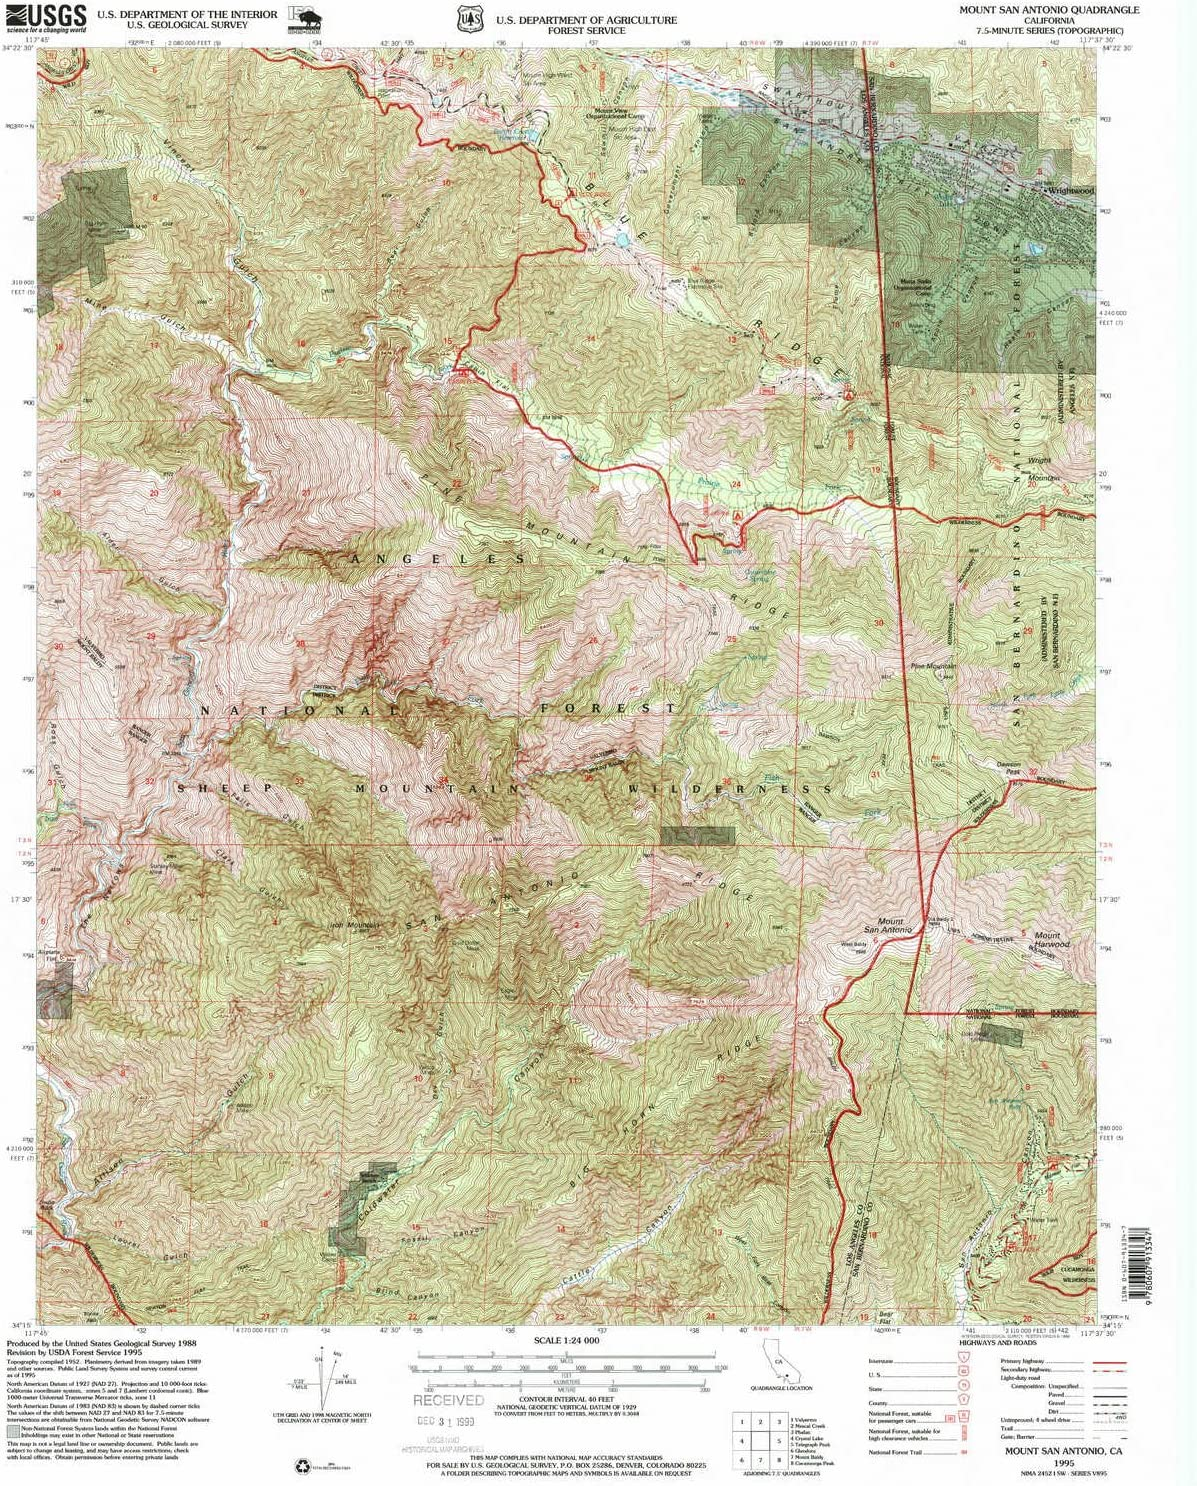 YellowMaps Hutto TX topo map 1:24000 Scale Updated 1987 27.1 x 23.2 in 1987 7.5 X 7.5 Minute Historical